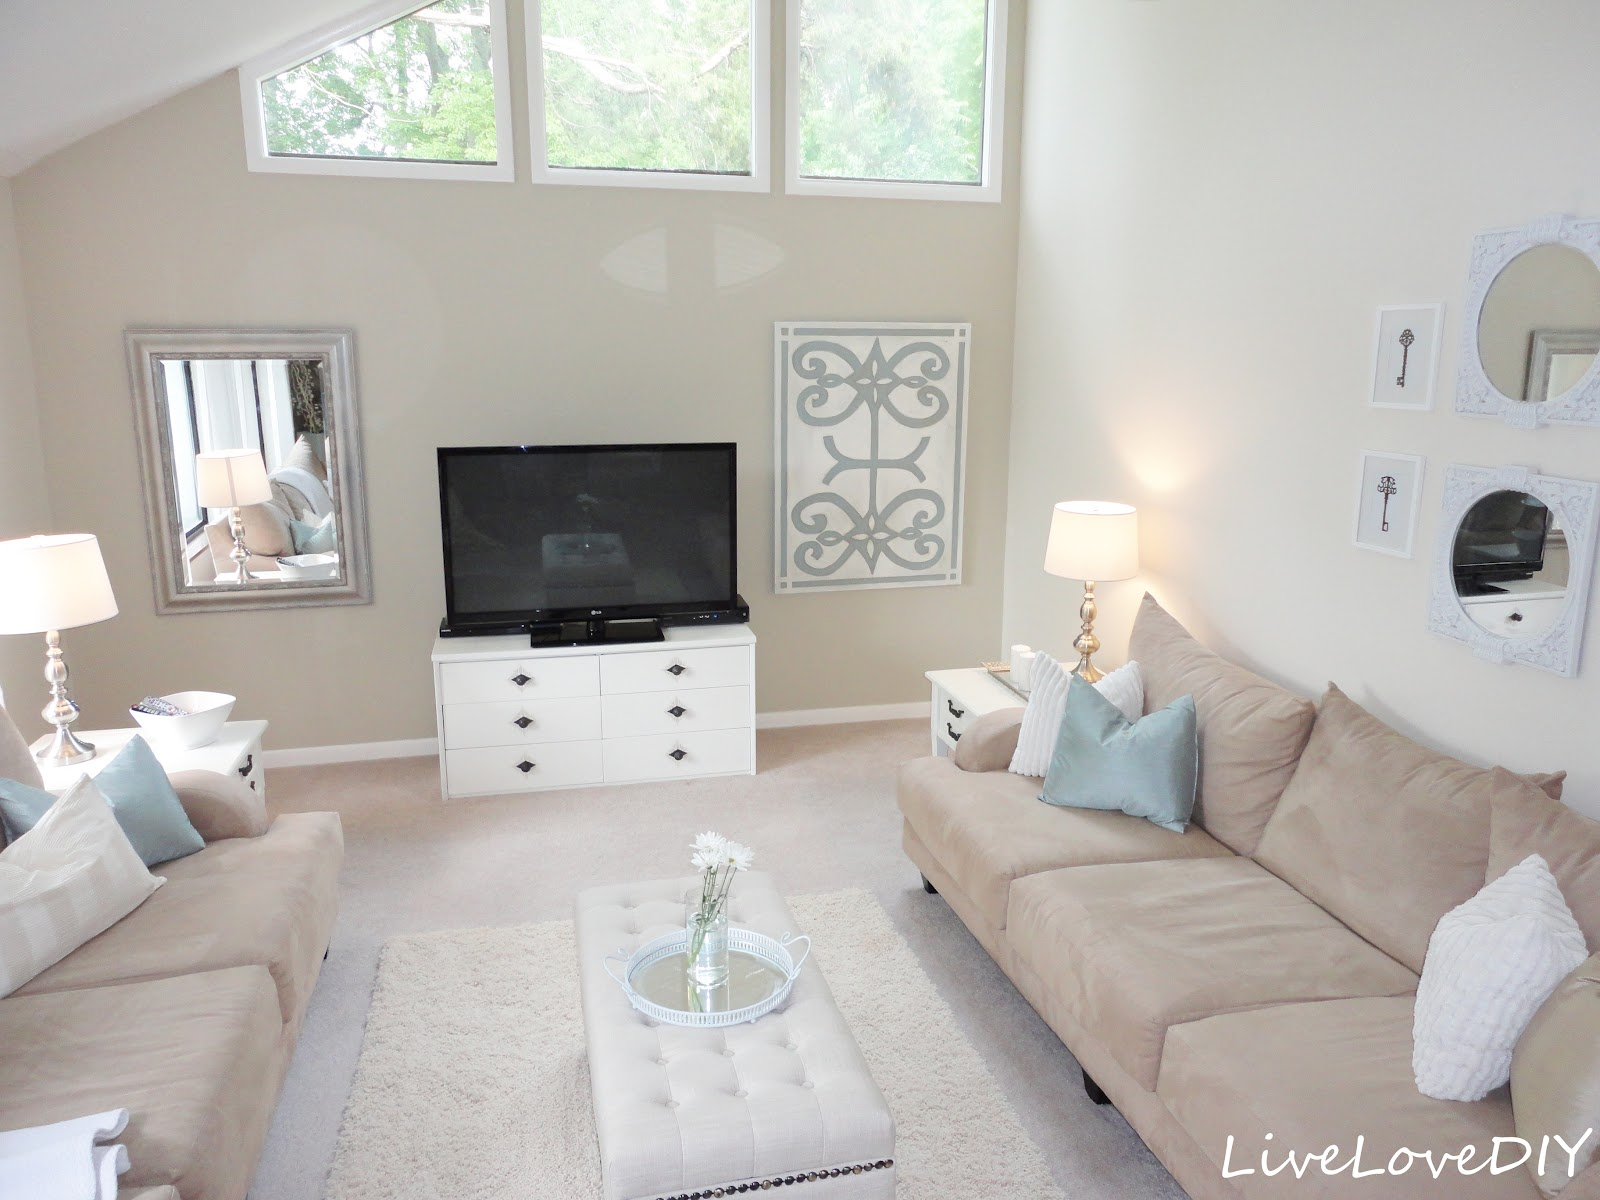 LiveLoveDIY: Living Room Reveal & DIY Wall Art